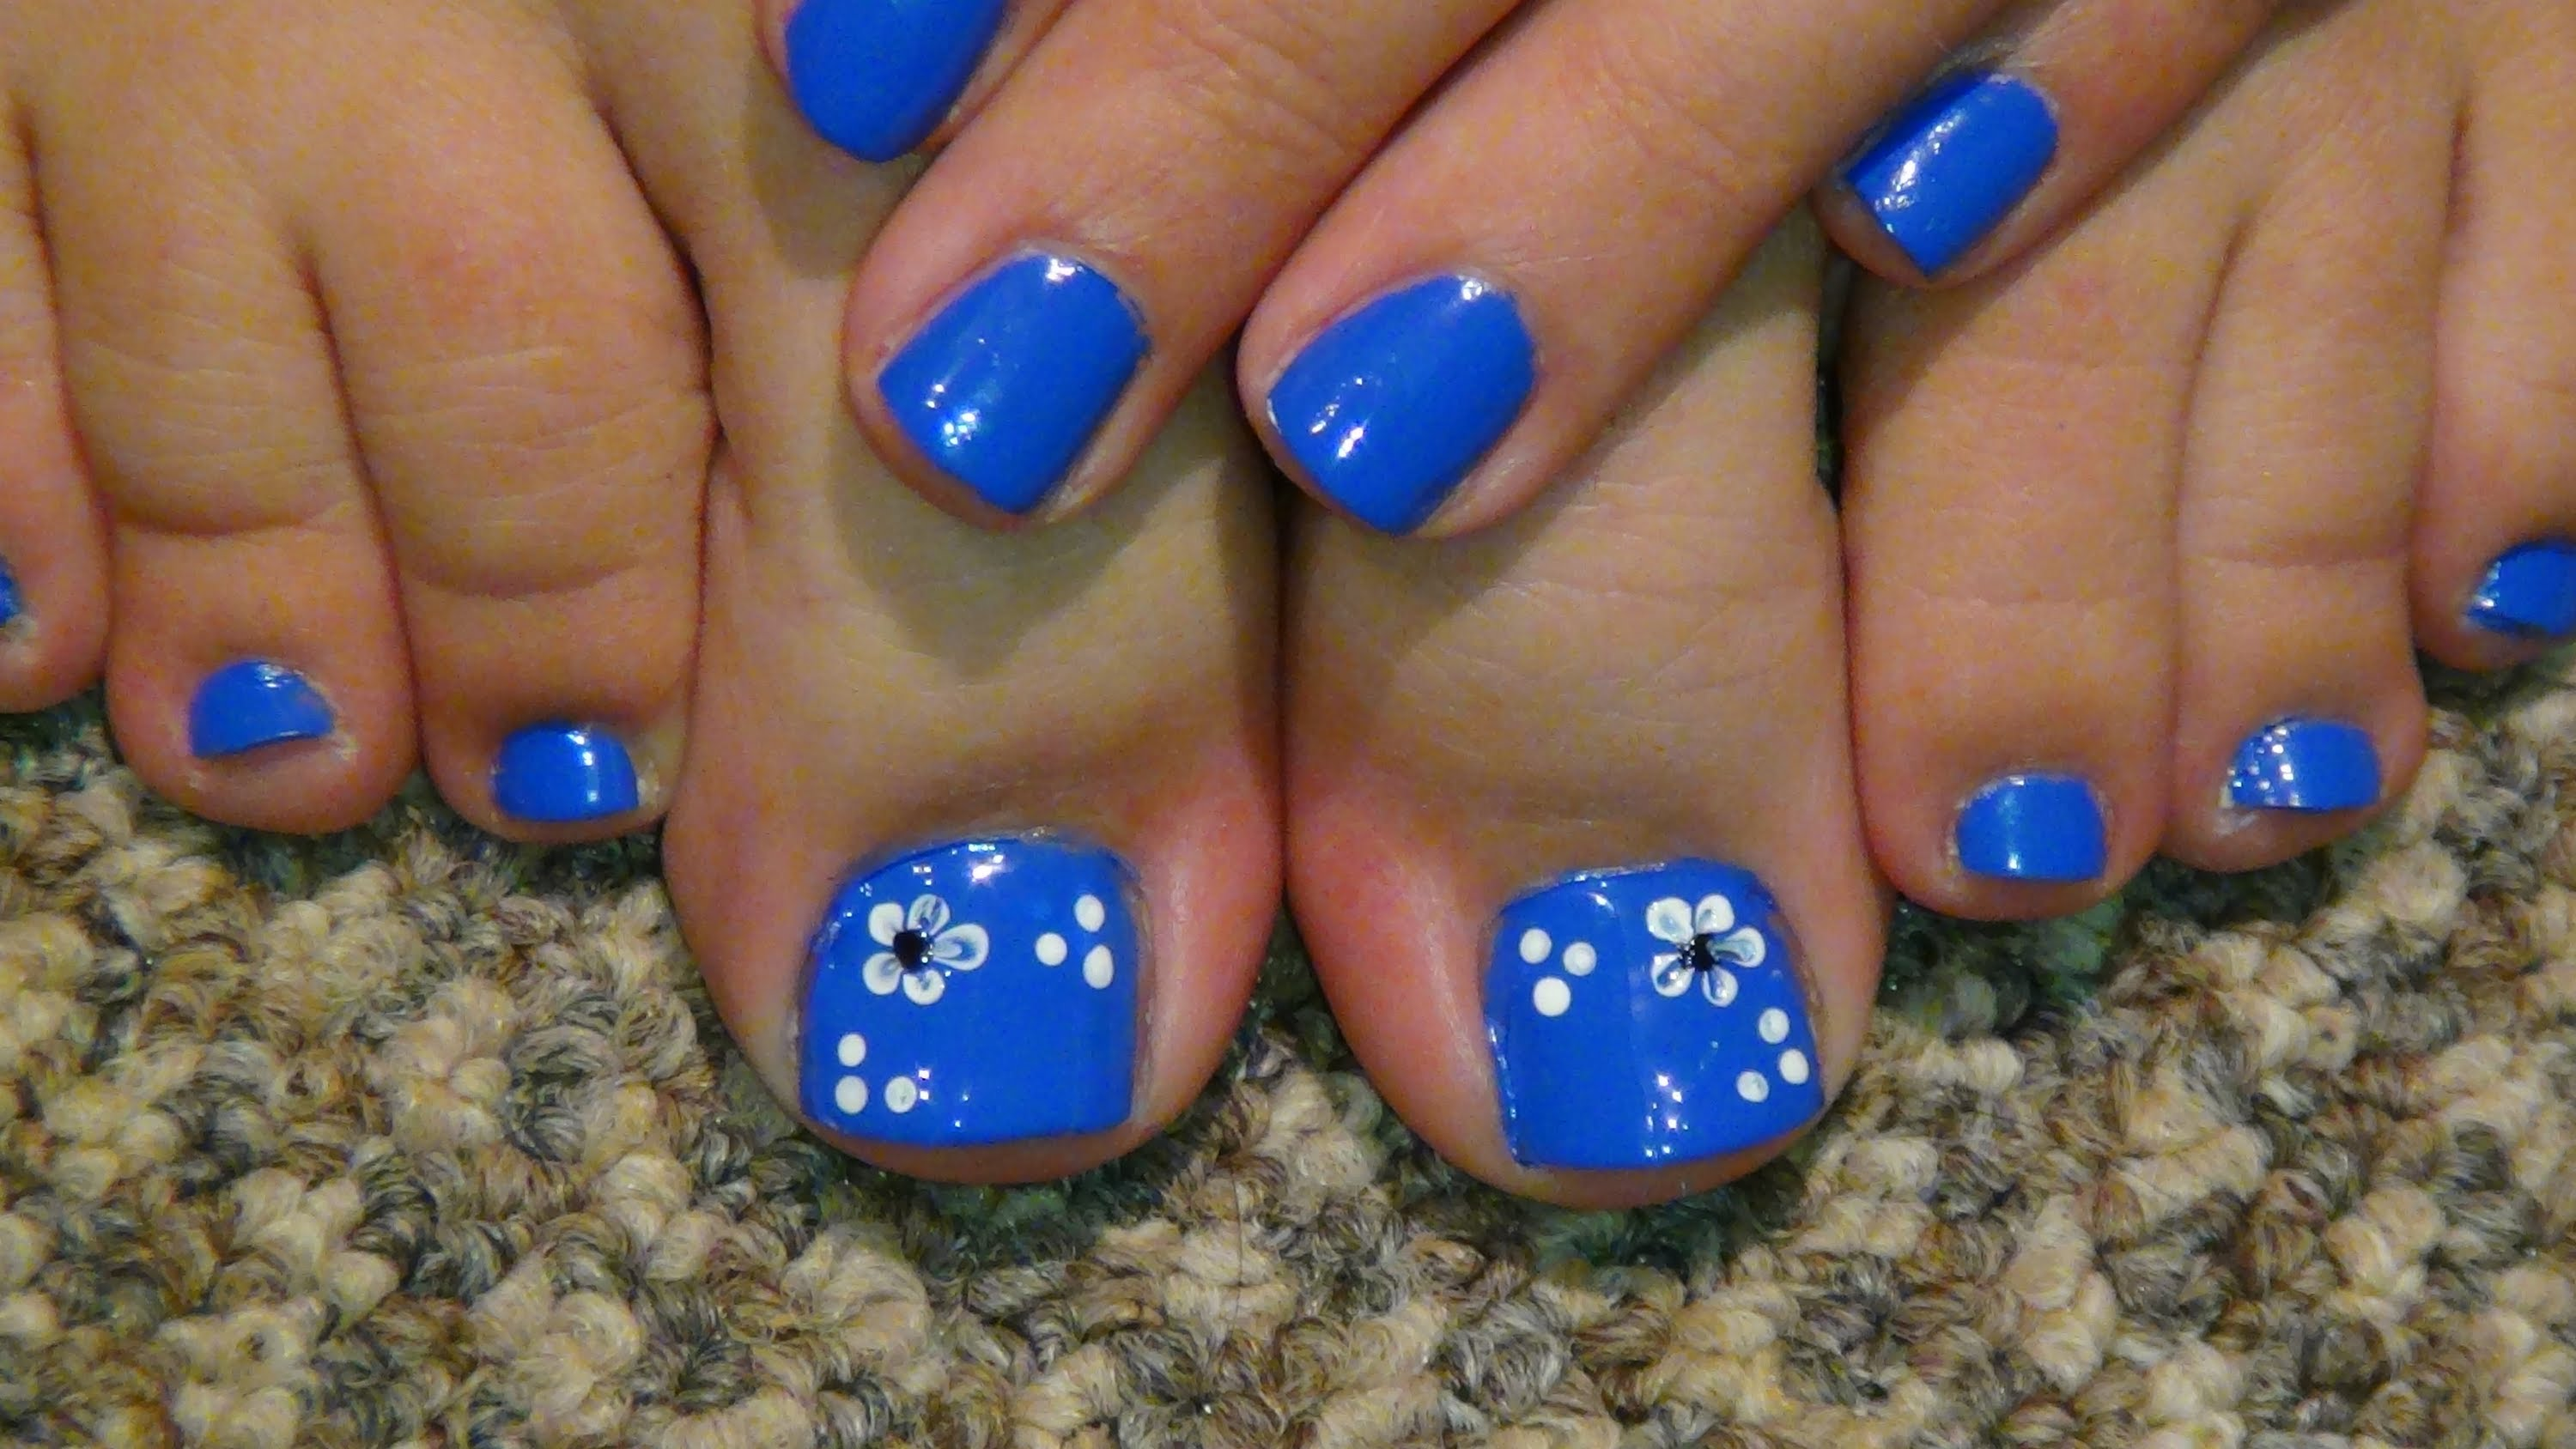 15 Flower Pedicure Designs Images - Pedicure Toe Nail ...